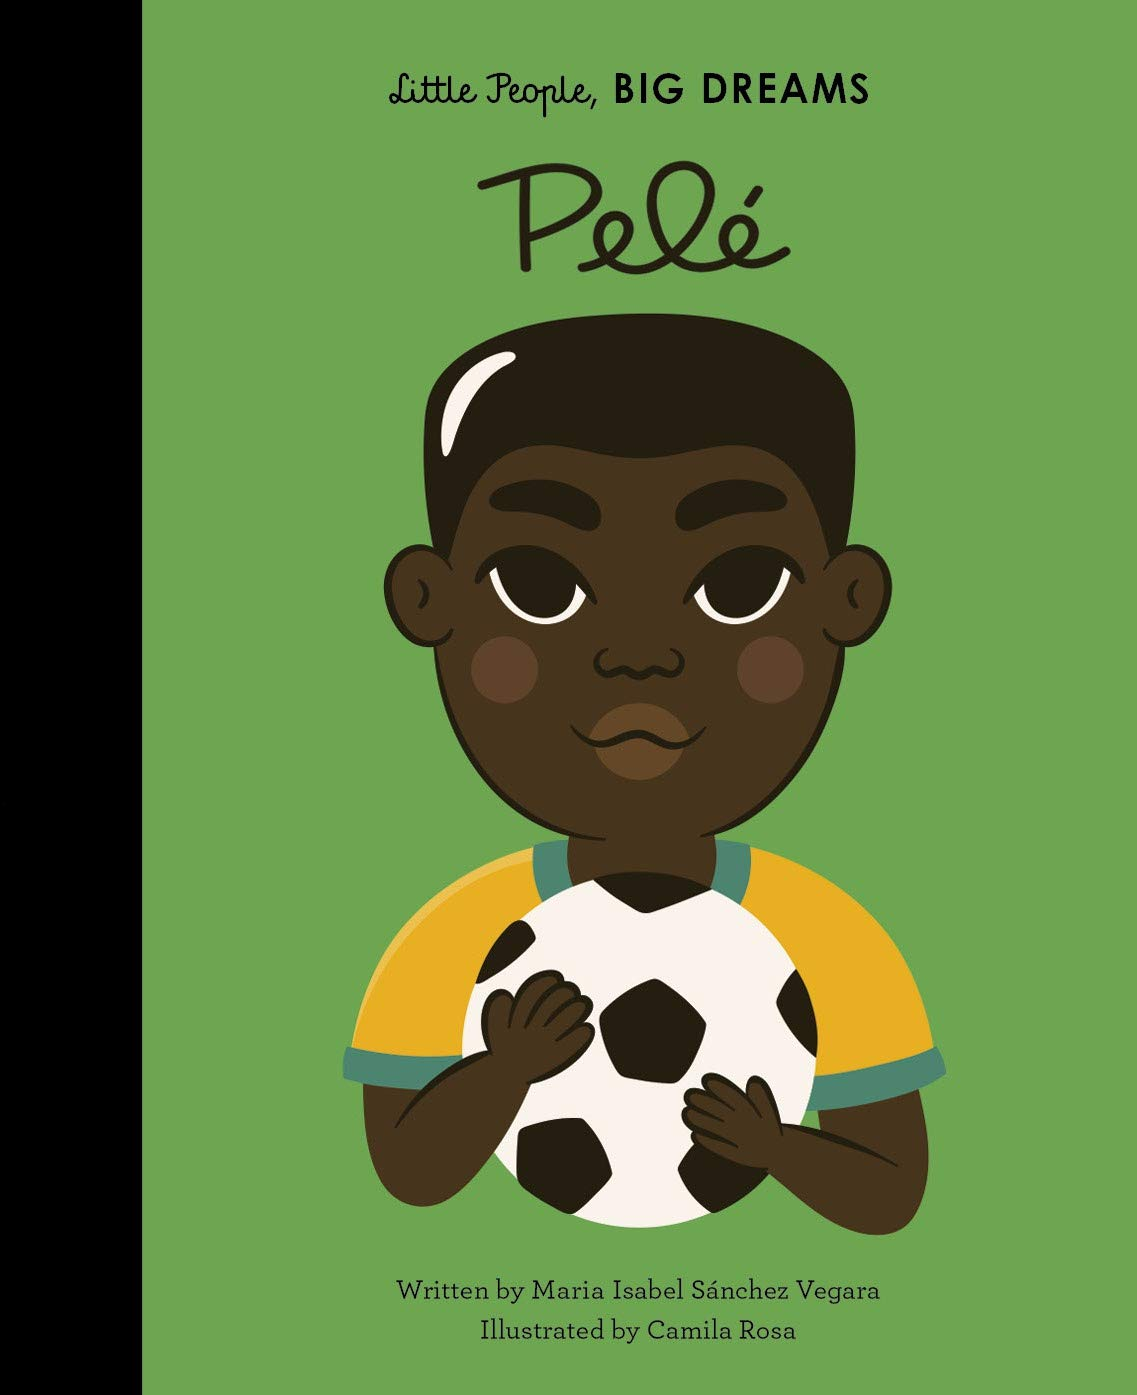 Pele - Little People Big Dreams